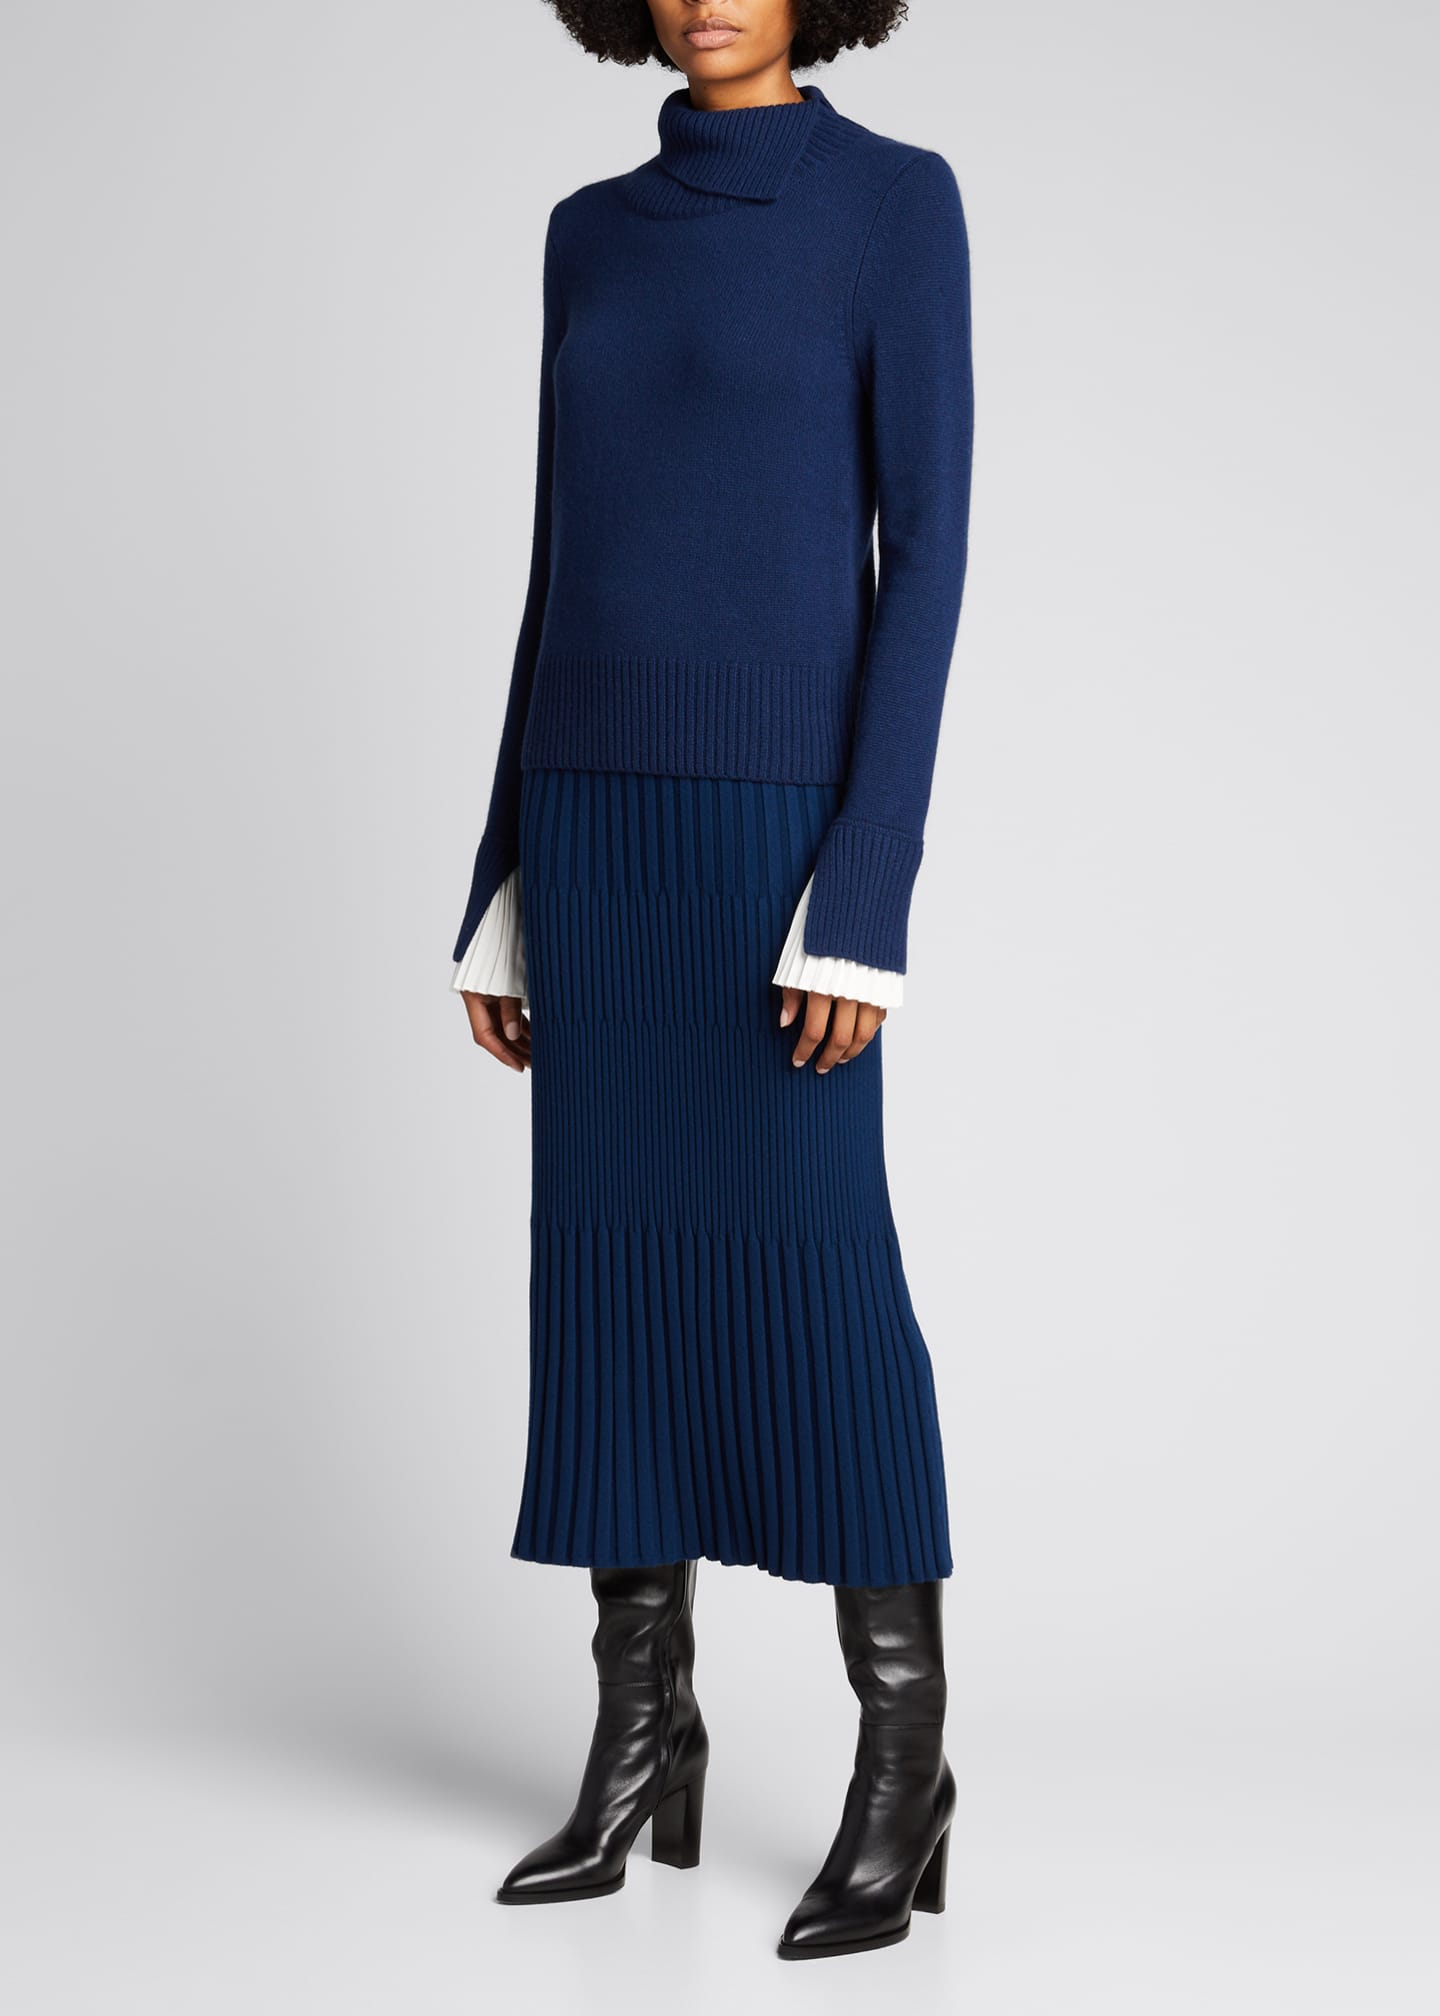 Cashmere Turtleneck Sweater w/ Pleated Cuff Detail